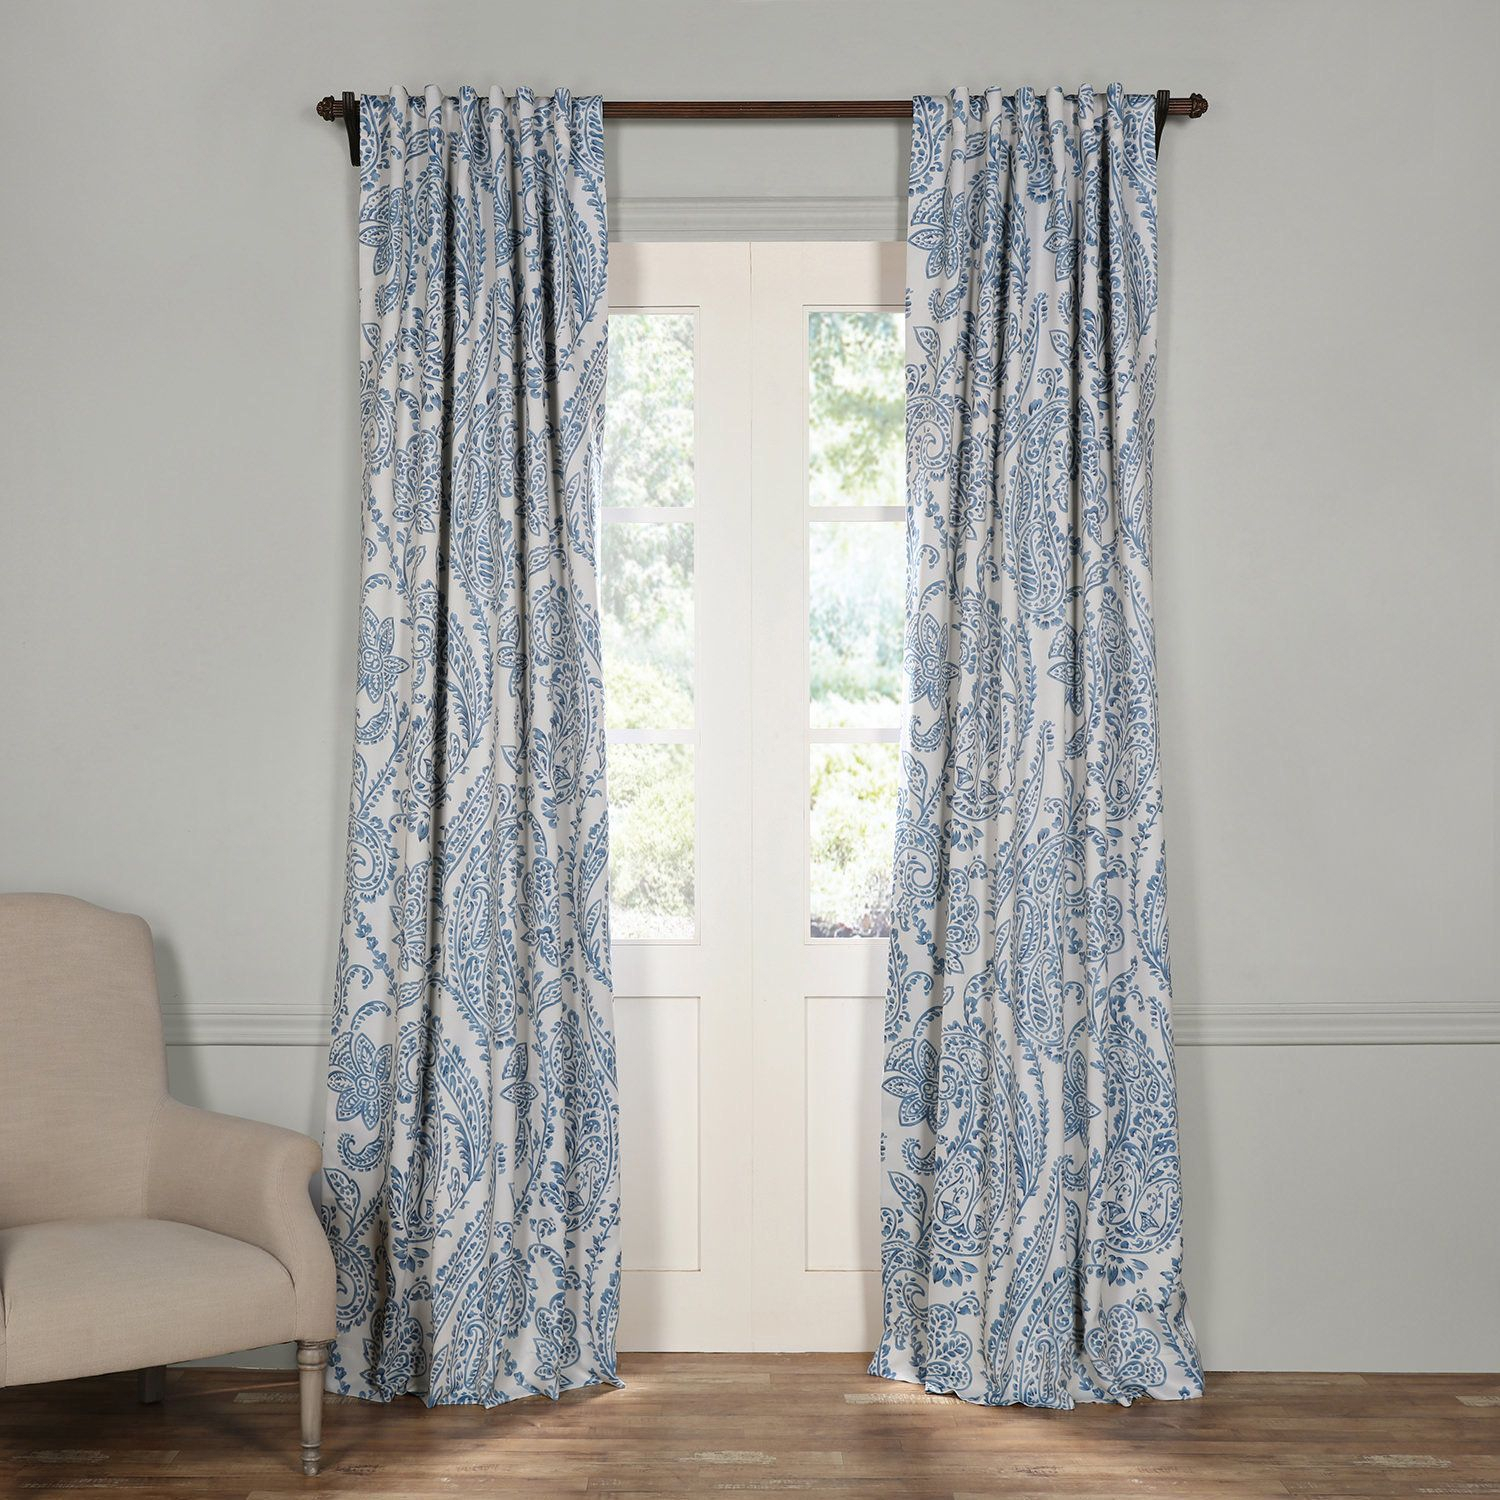 Prtw – Popular Pinterest Intended For Sarong Grey Printed Cotton Pole Pocket Single Curtain Panels (View 15 of 20)